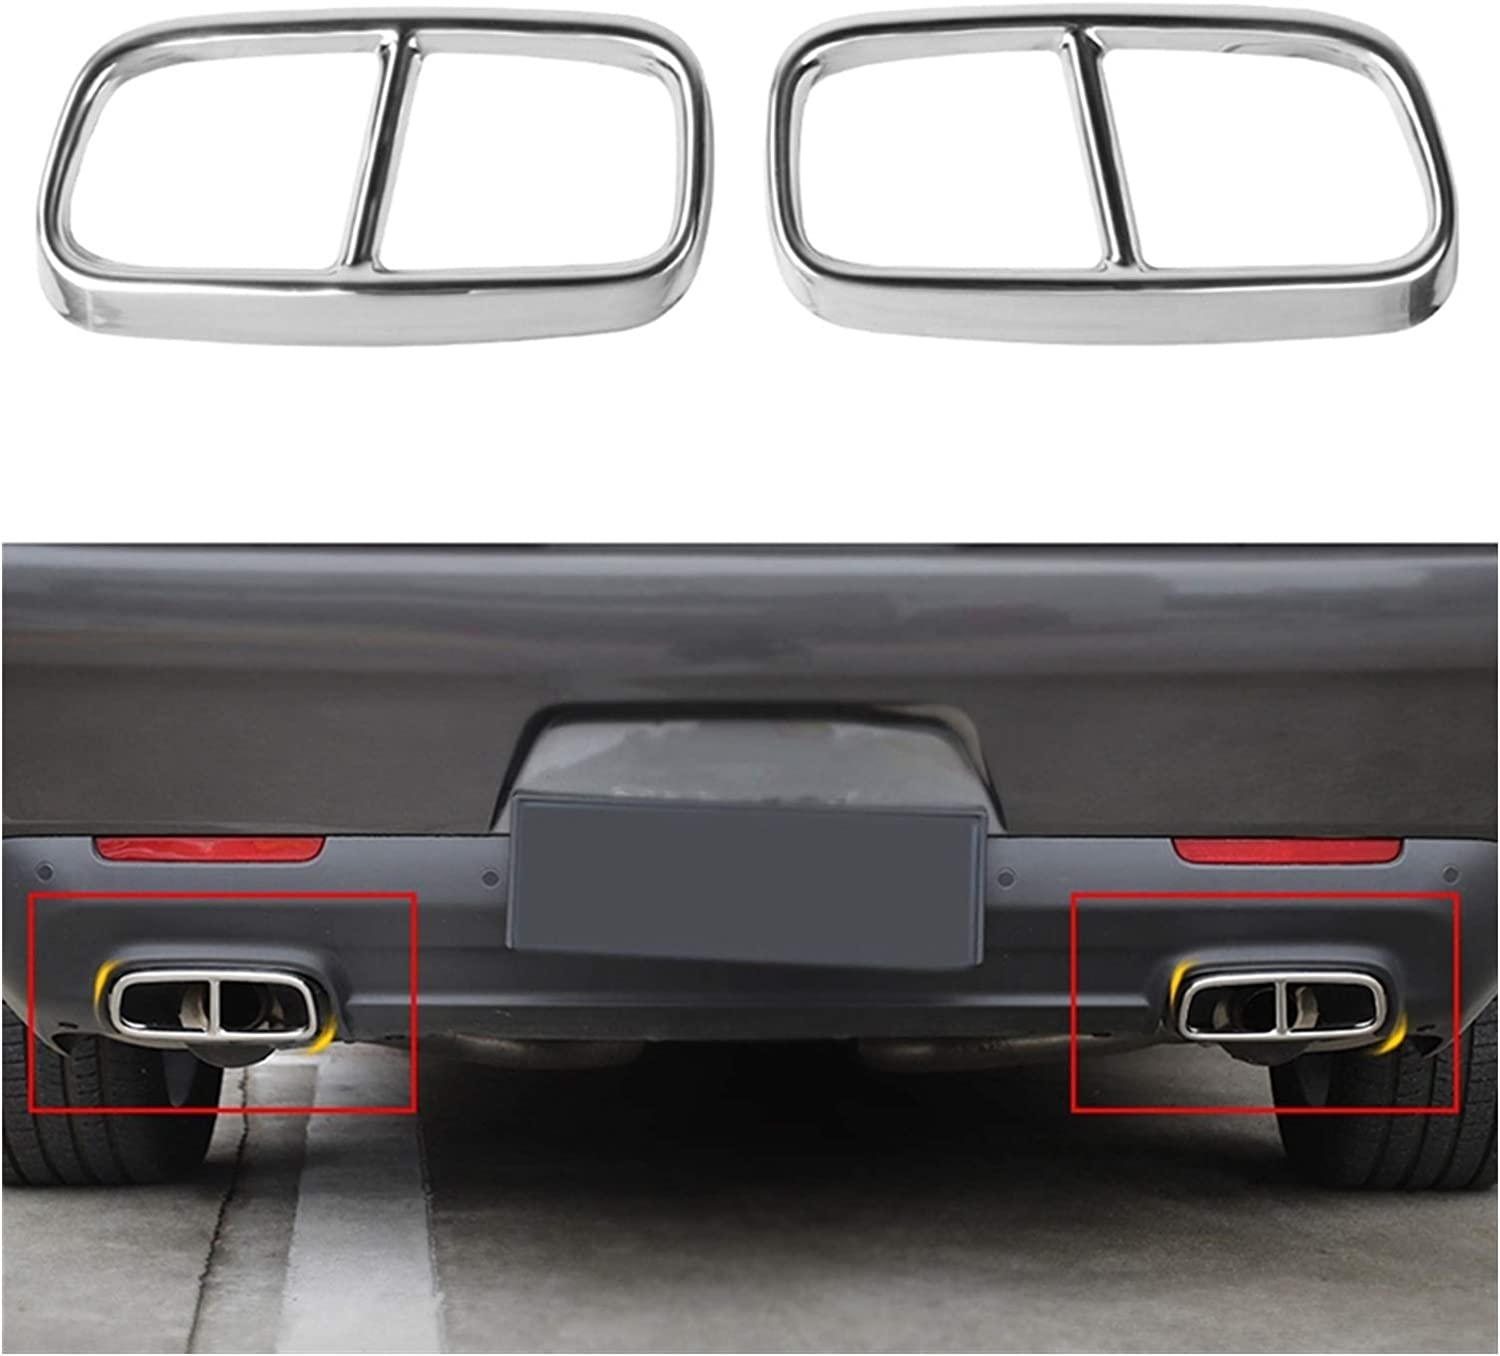 WRDD Exhaust Tail Tip Mail order cheap for S Stainless 2015-2020 Challenger Dodge Max 60% OFF